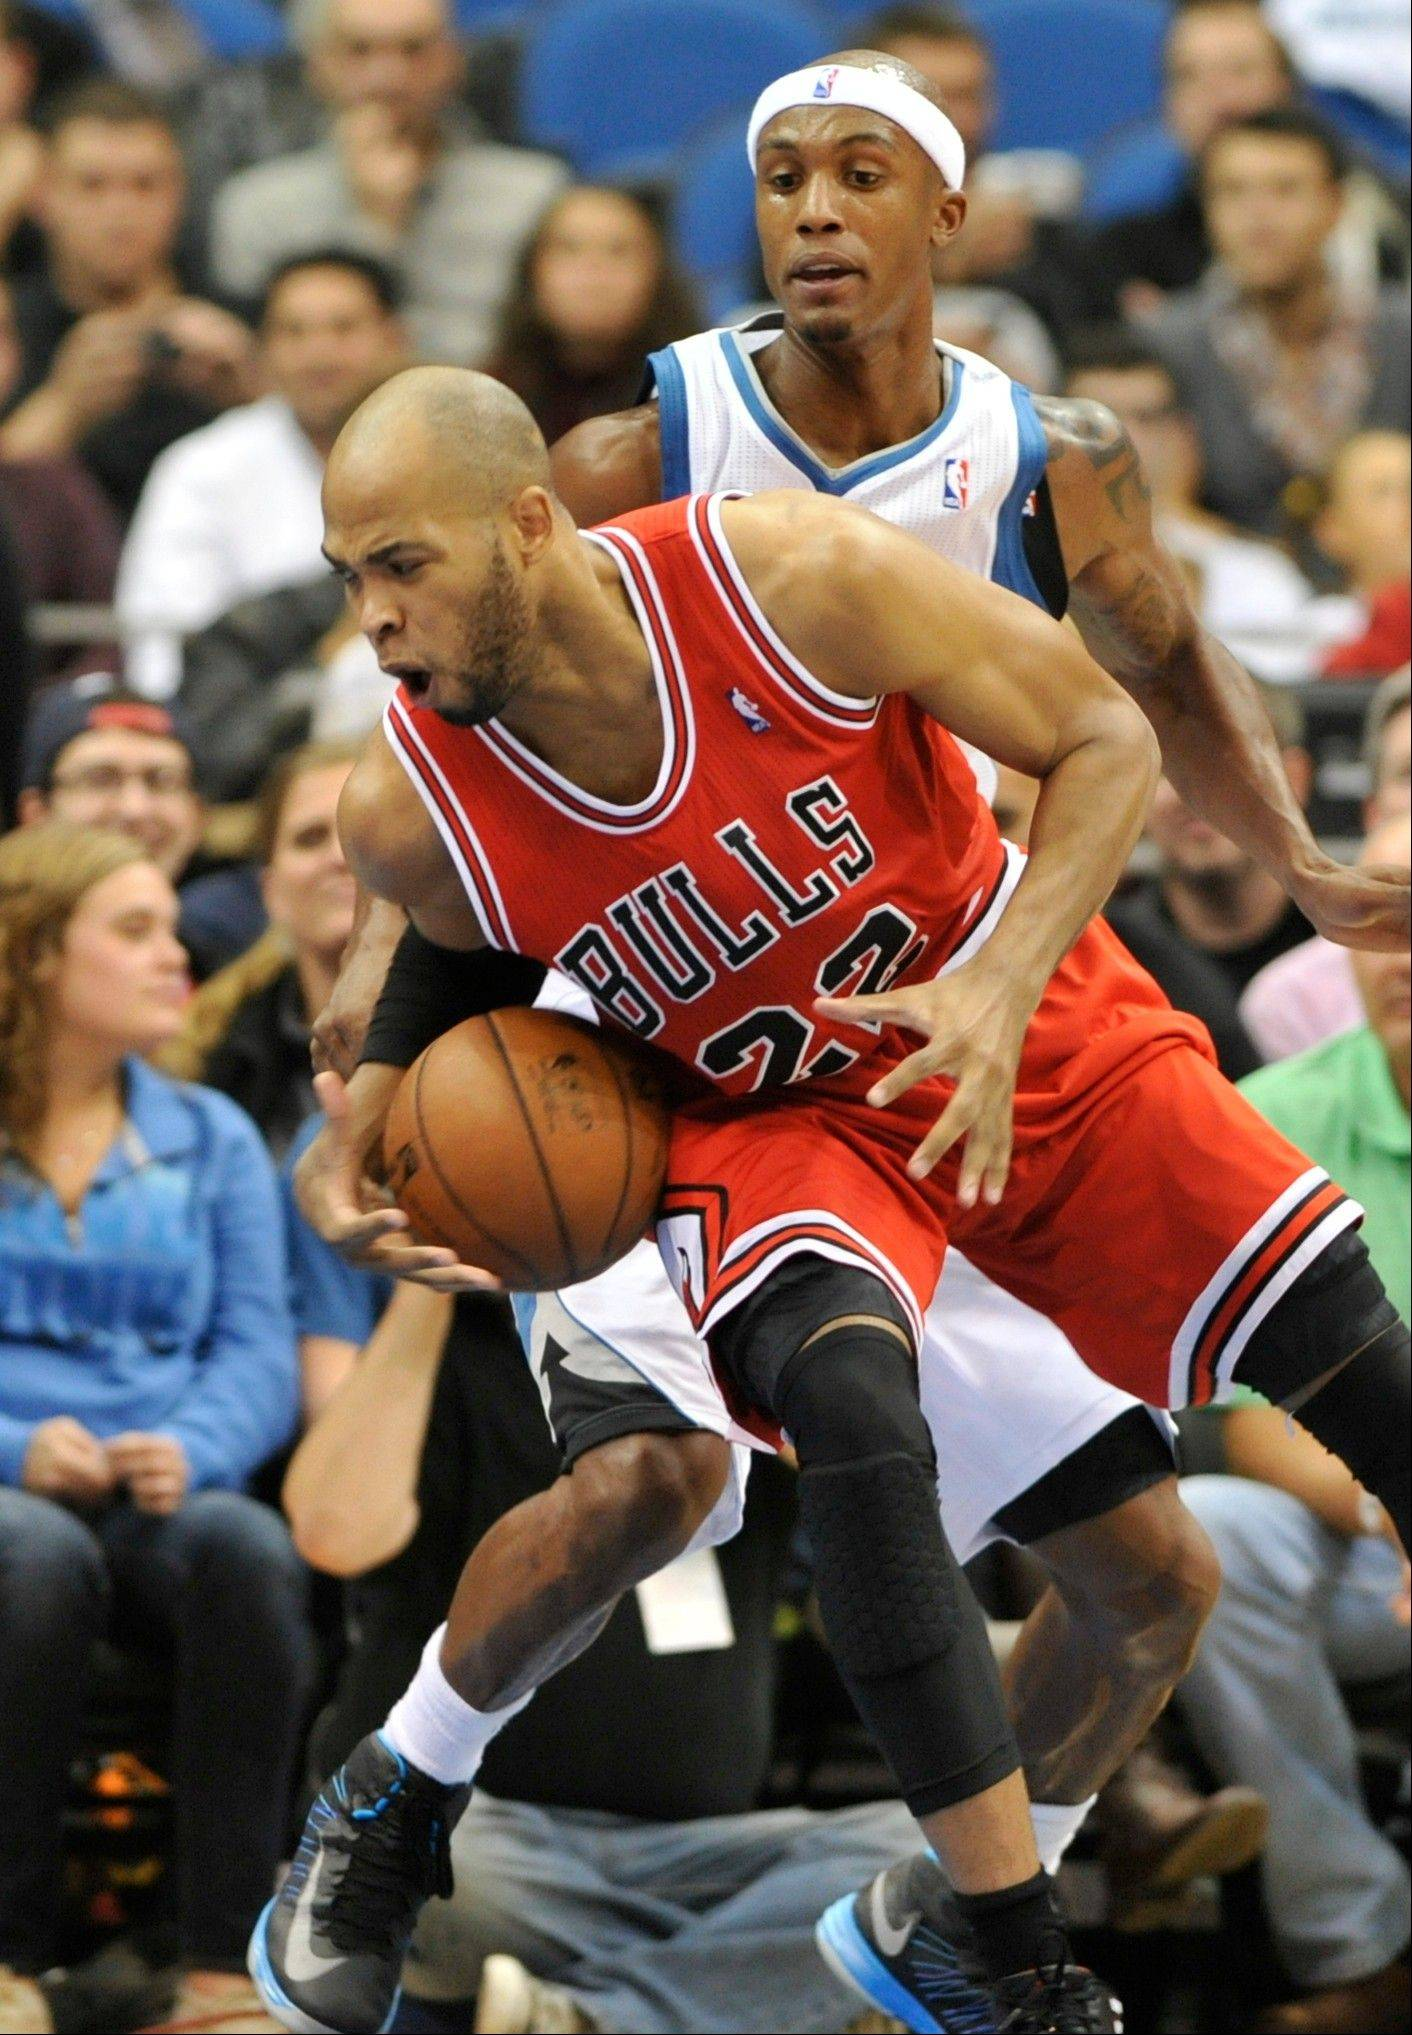 Chicago Bulls' Taj Gibson (22) tries to maintain balance as Minnesota Timberwolves' Dante Cunningham defends during the first half of an NBA preseason basketball game, Saturday, Oct. 13, 2012, in Minneapolis.